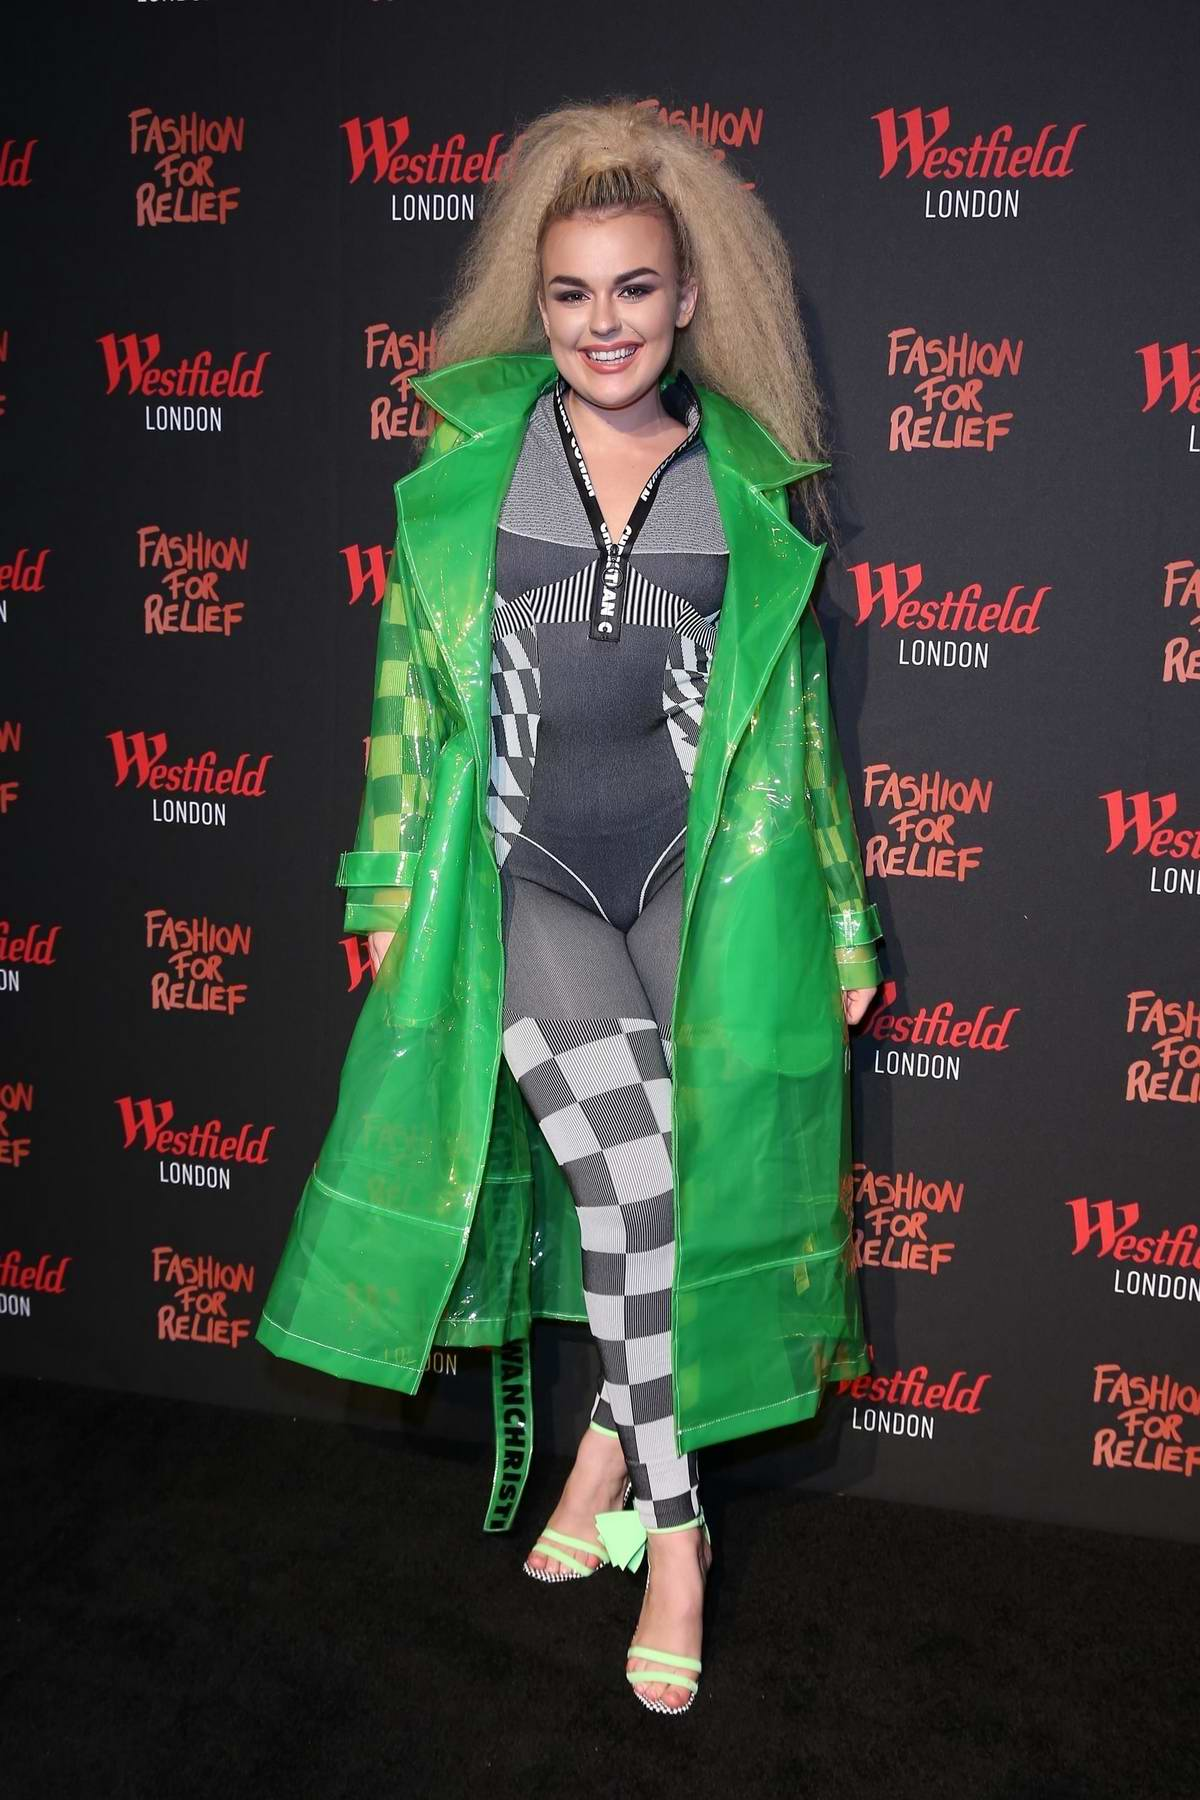 Tallia Storm attends the Fashion For Relief pop-up store at Westfield London in London, UK